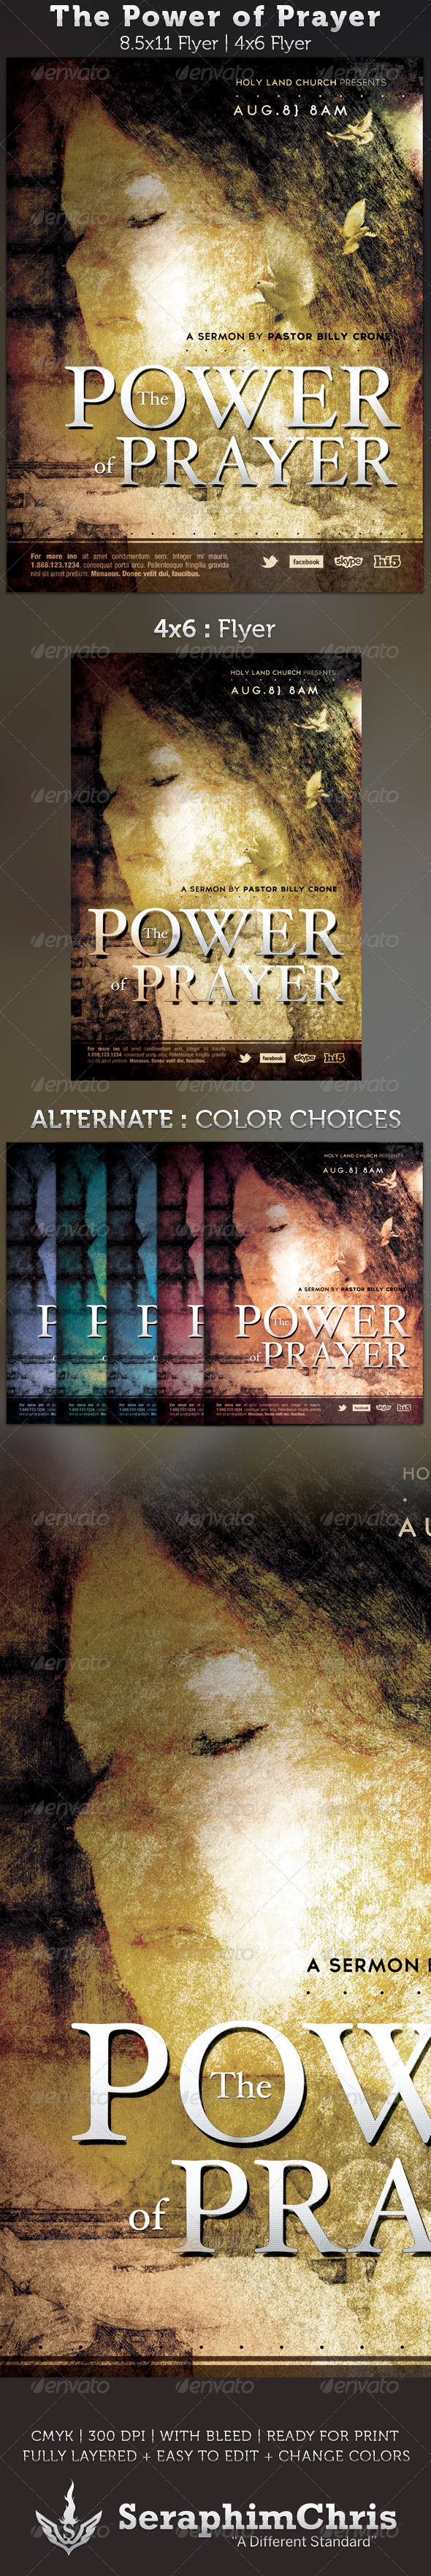 The Power of Prayer Church Flyer Template - Church Flyers